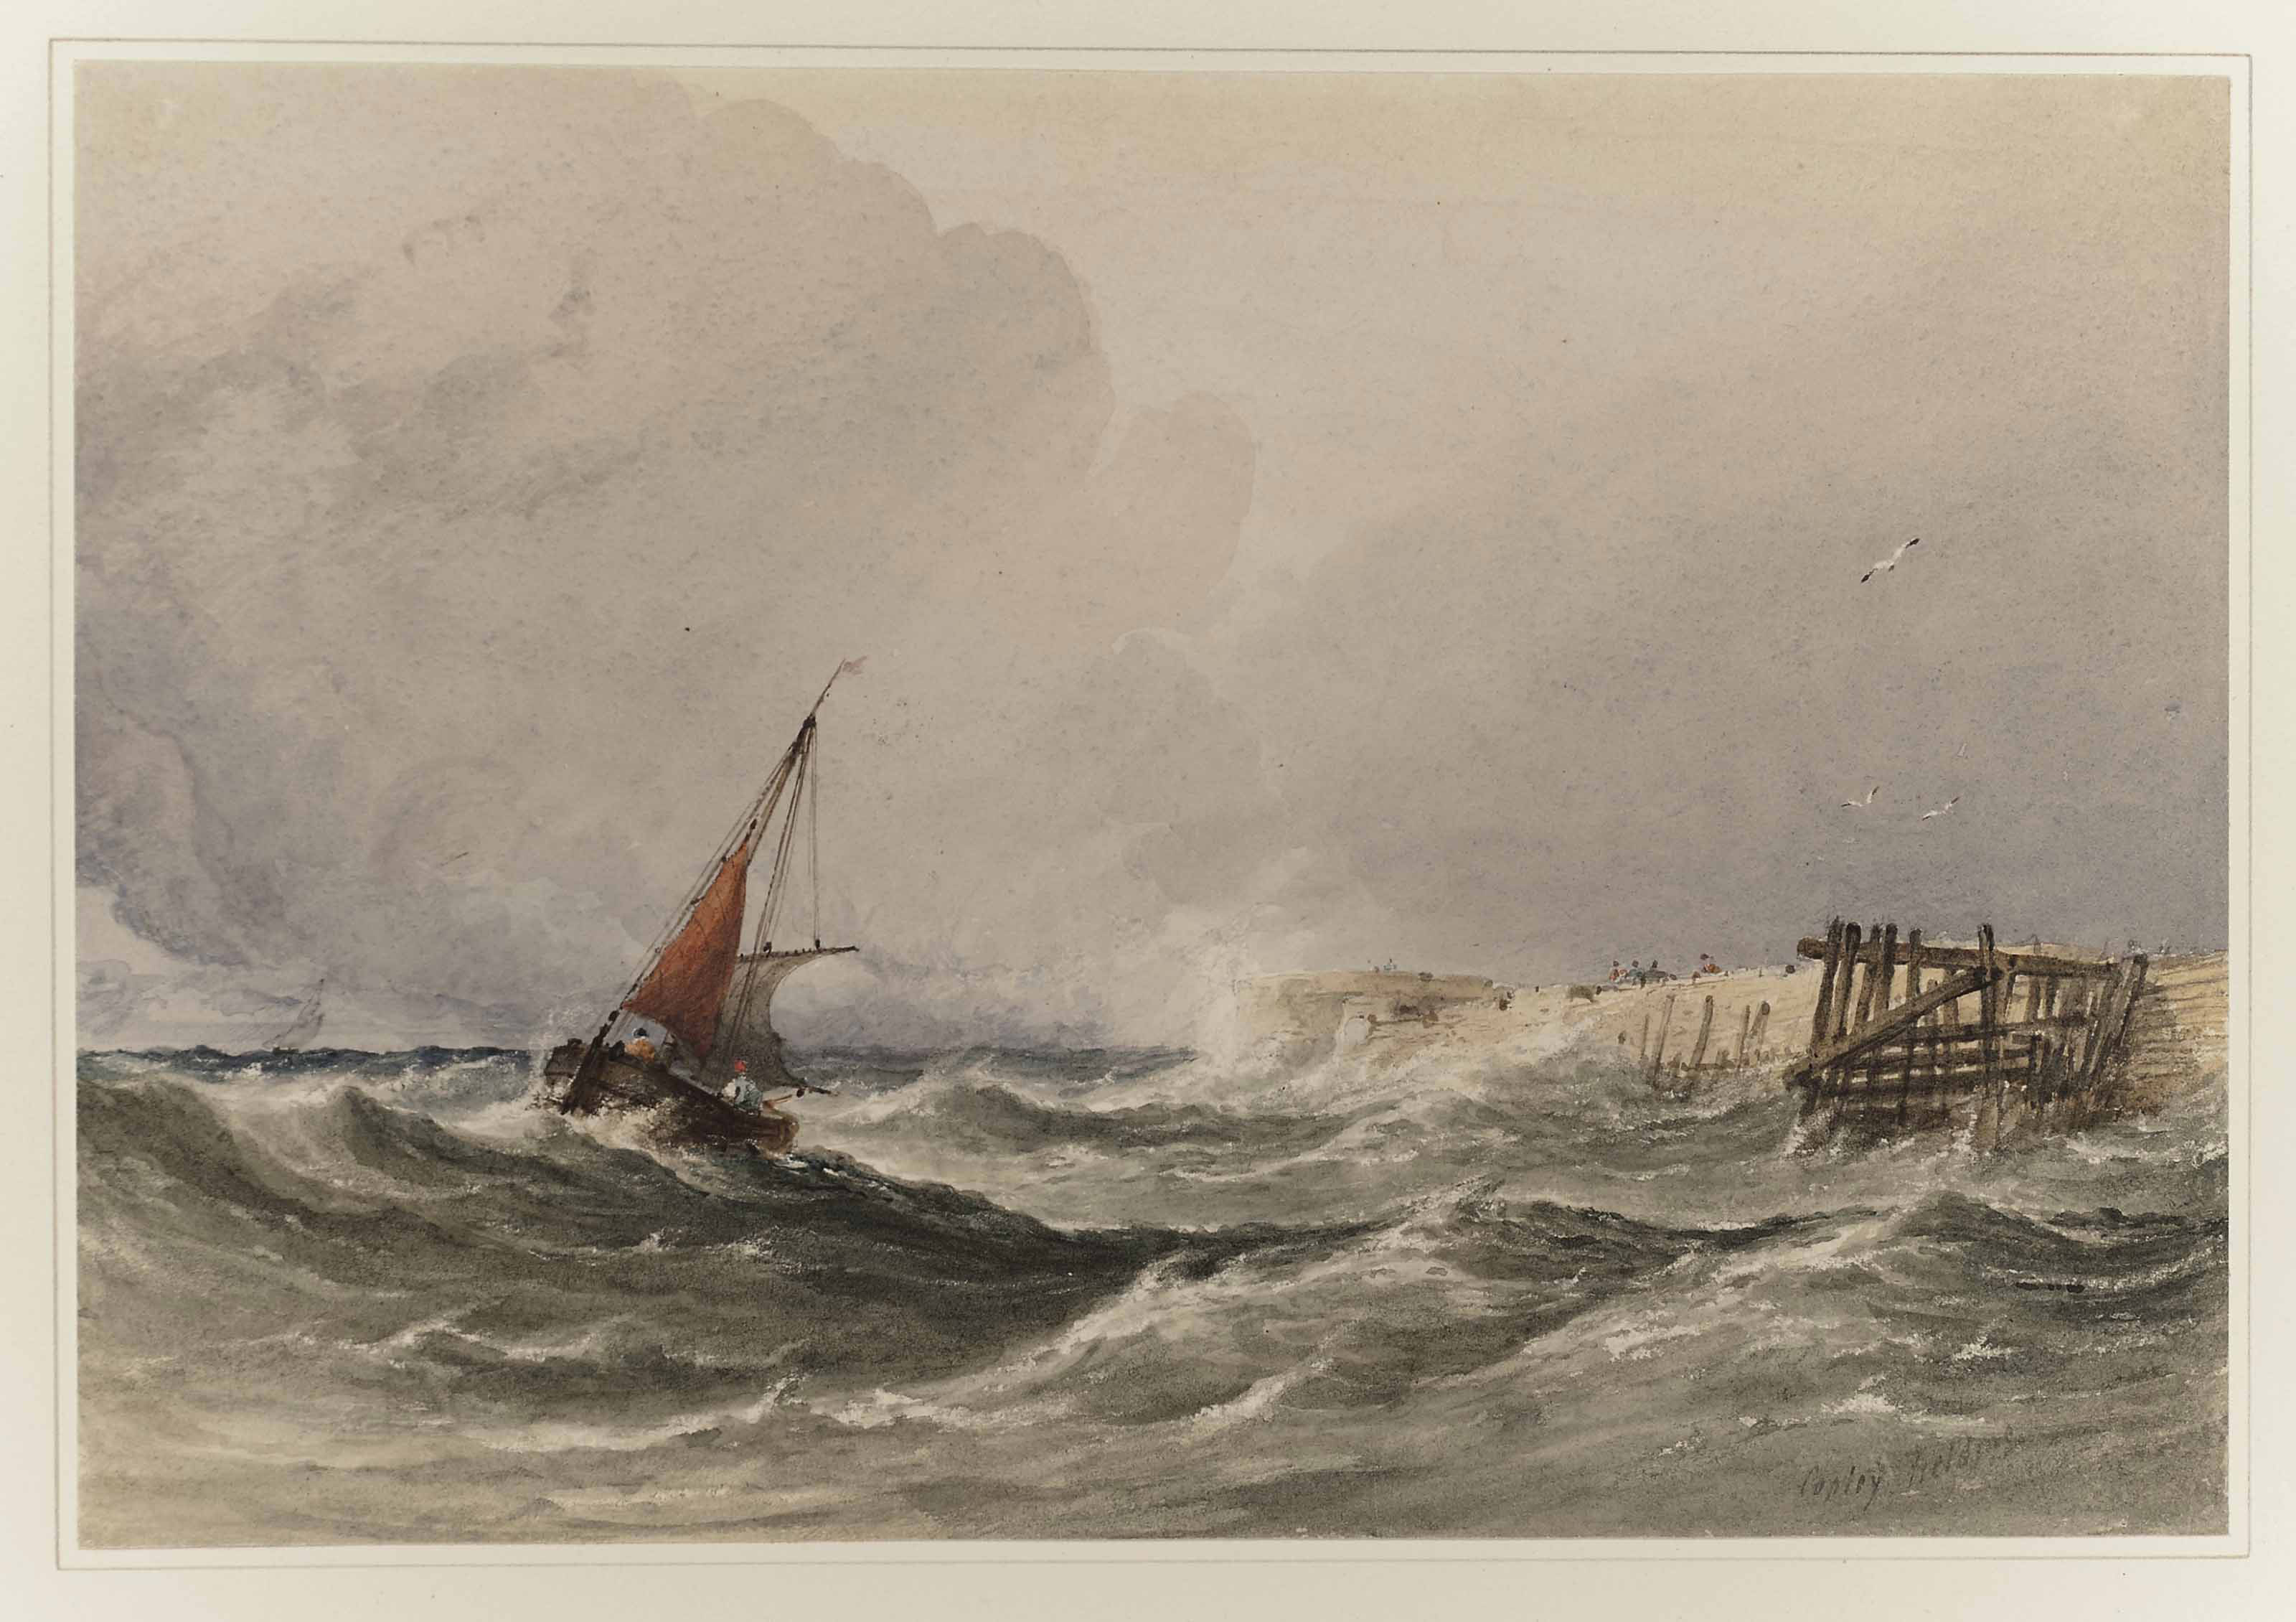 Shipping off the coast in rough seas